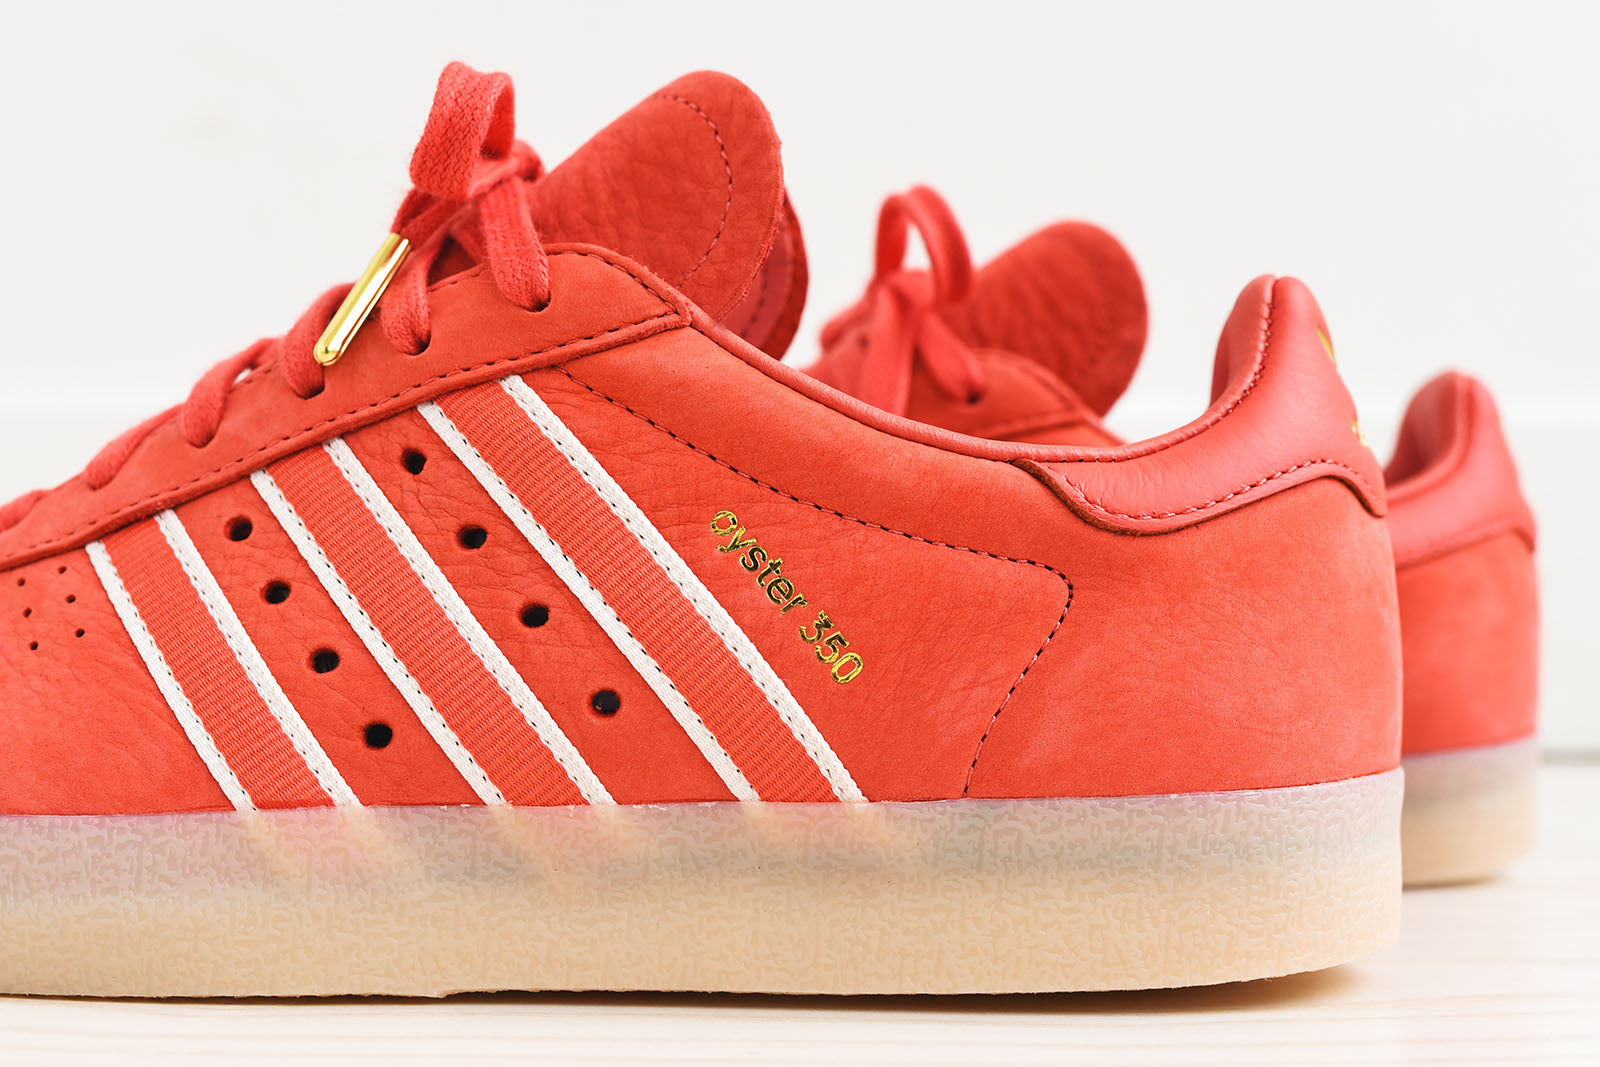 adidas x Oyster 350 - Scarlet / White / Gold